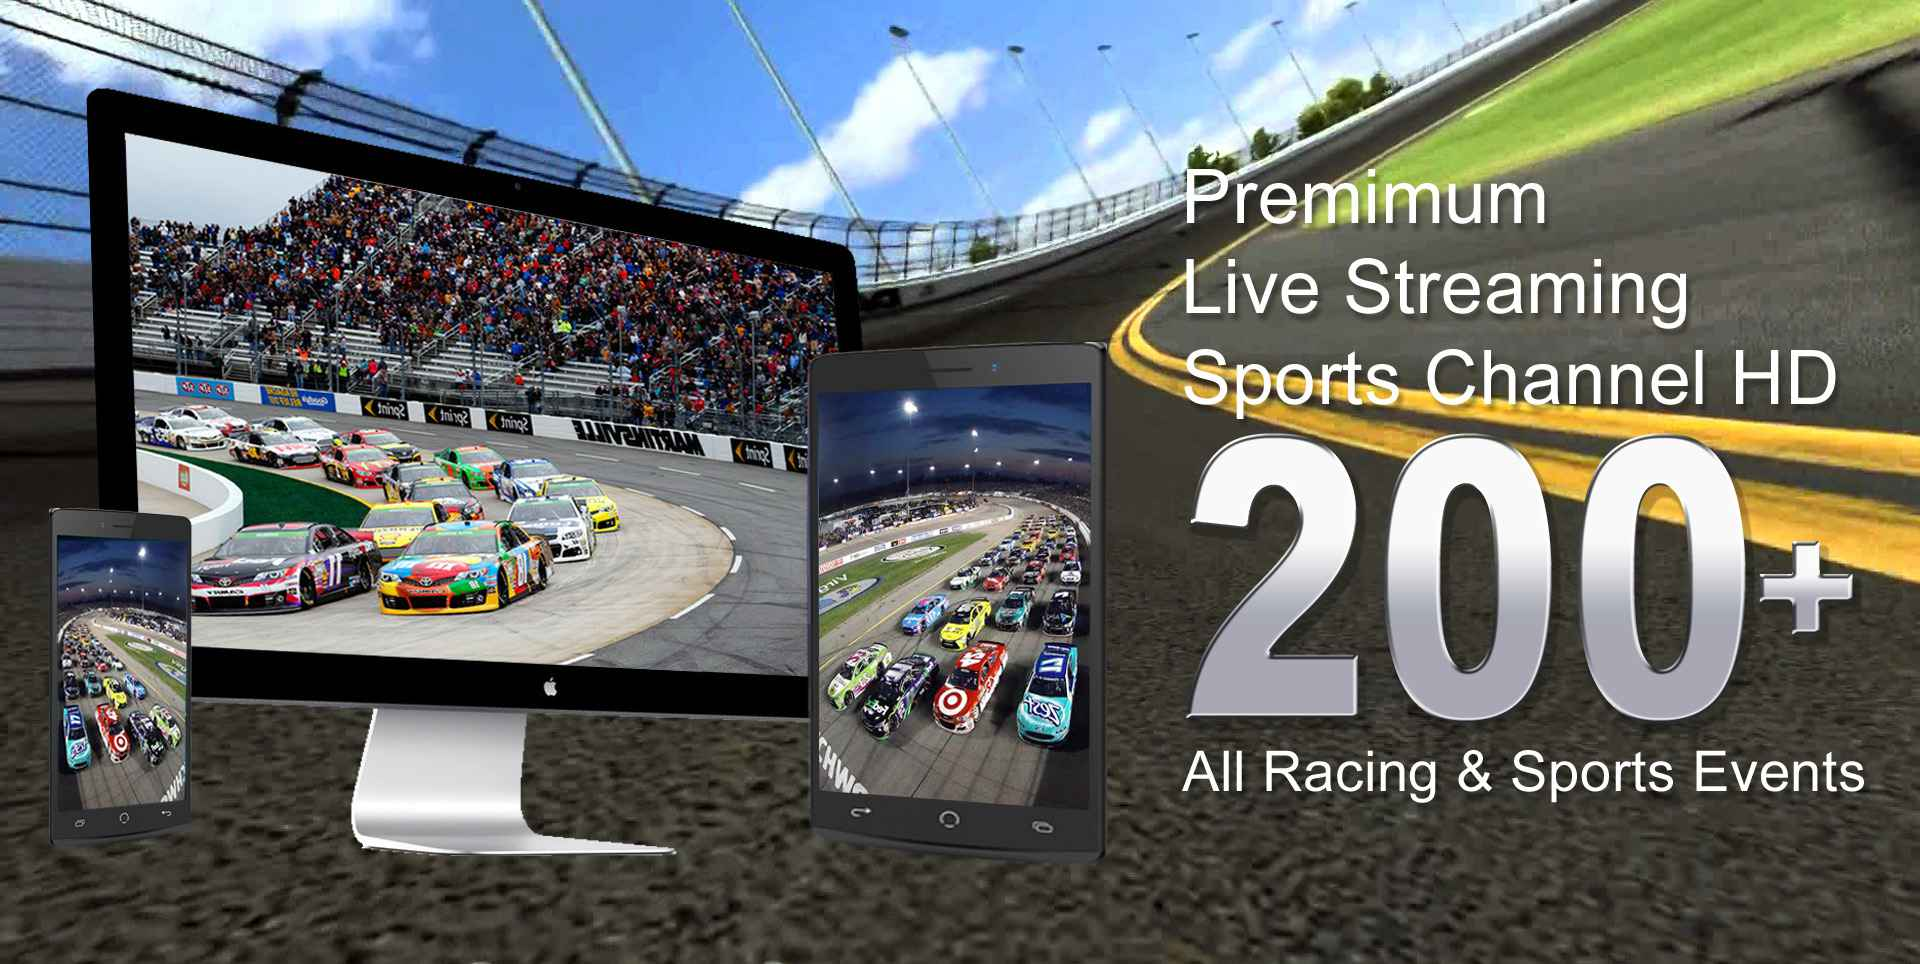 Texas Roadhouse 200 Truck Series Live